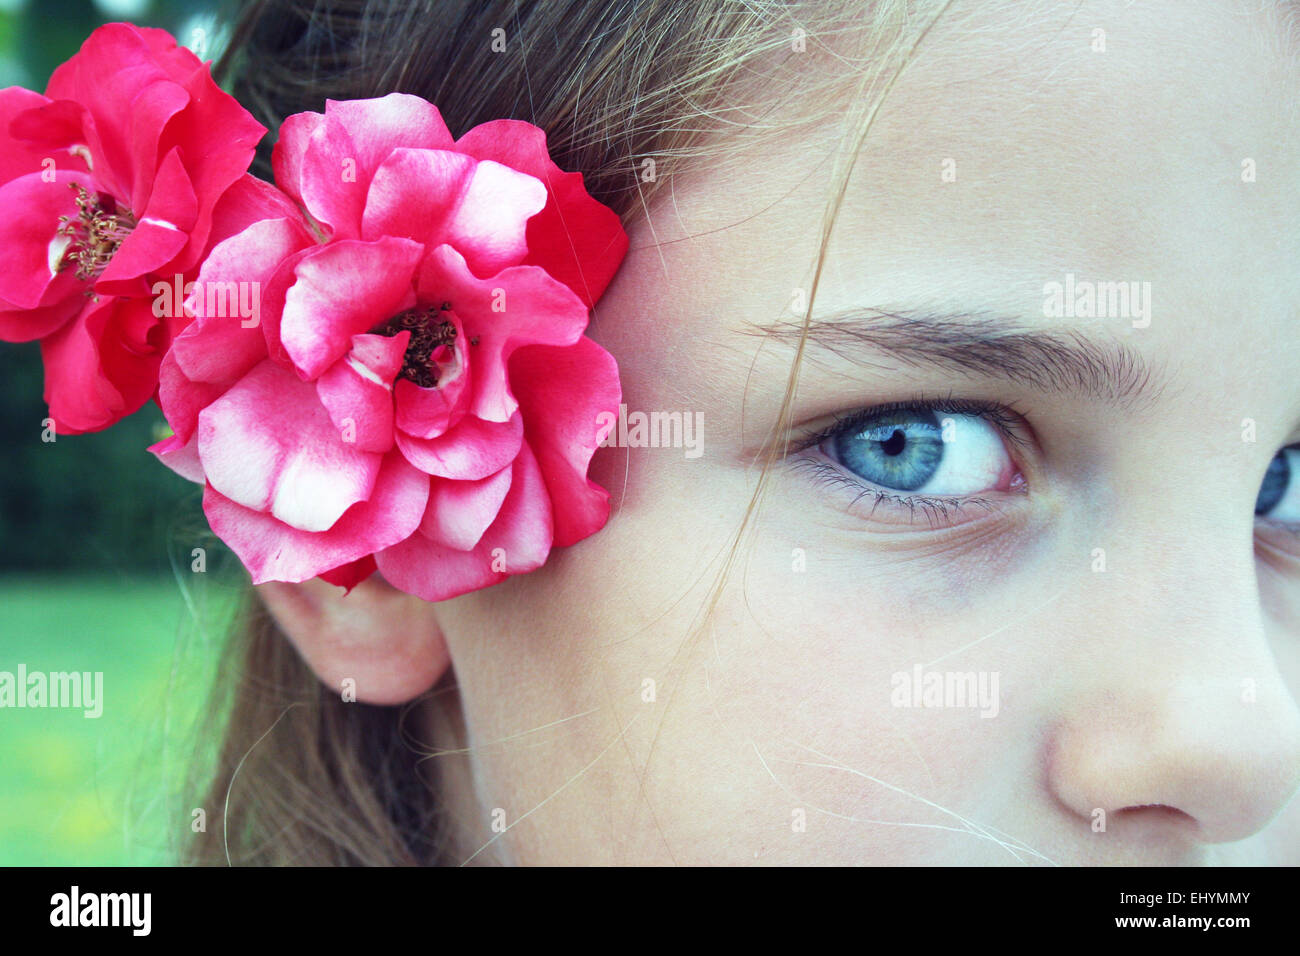 Flower behind ear stock photos flower behind ear stock images alamy portrait of a girl with flowers behind her ear stock image izmirmasajfo